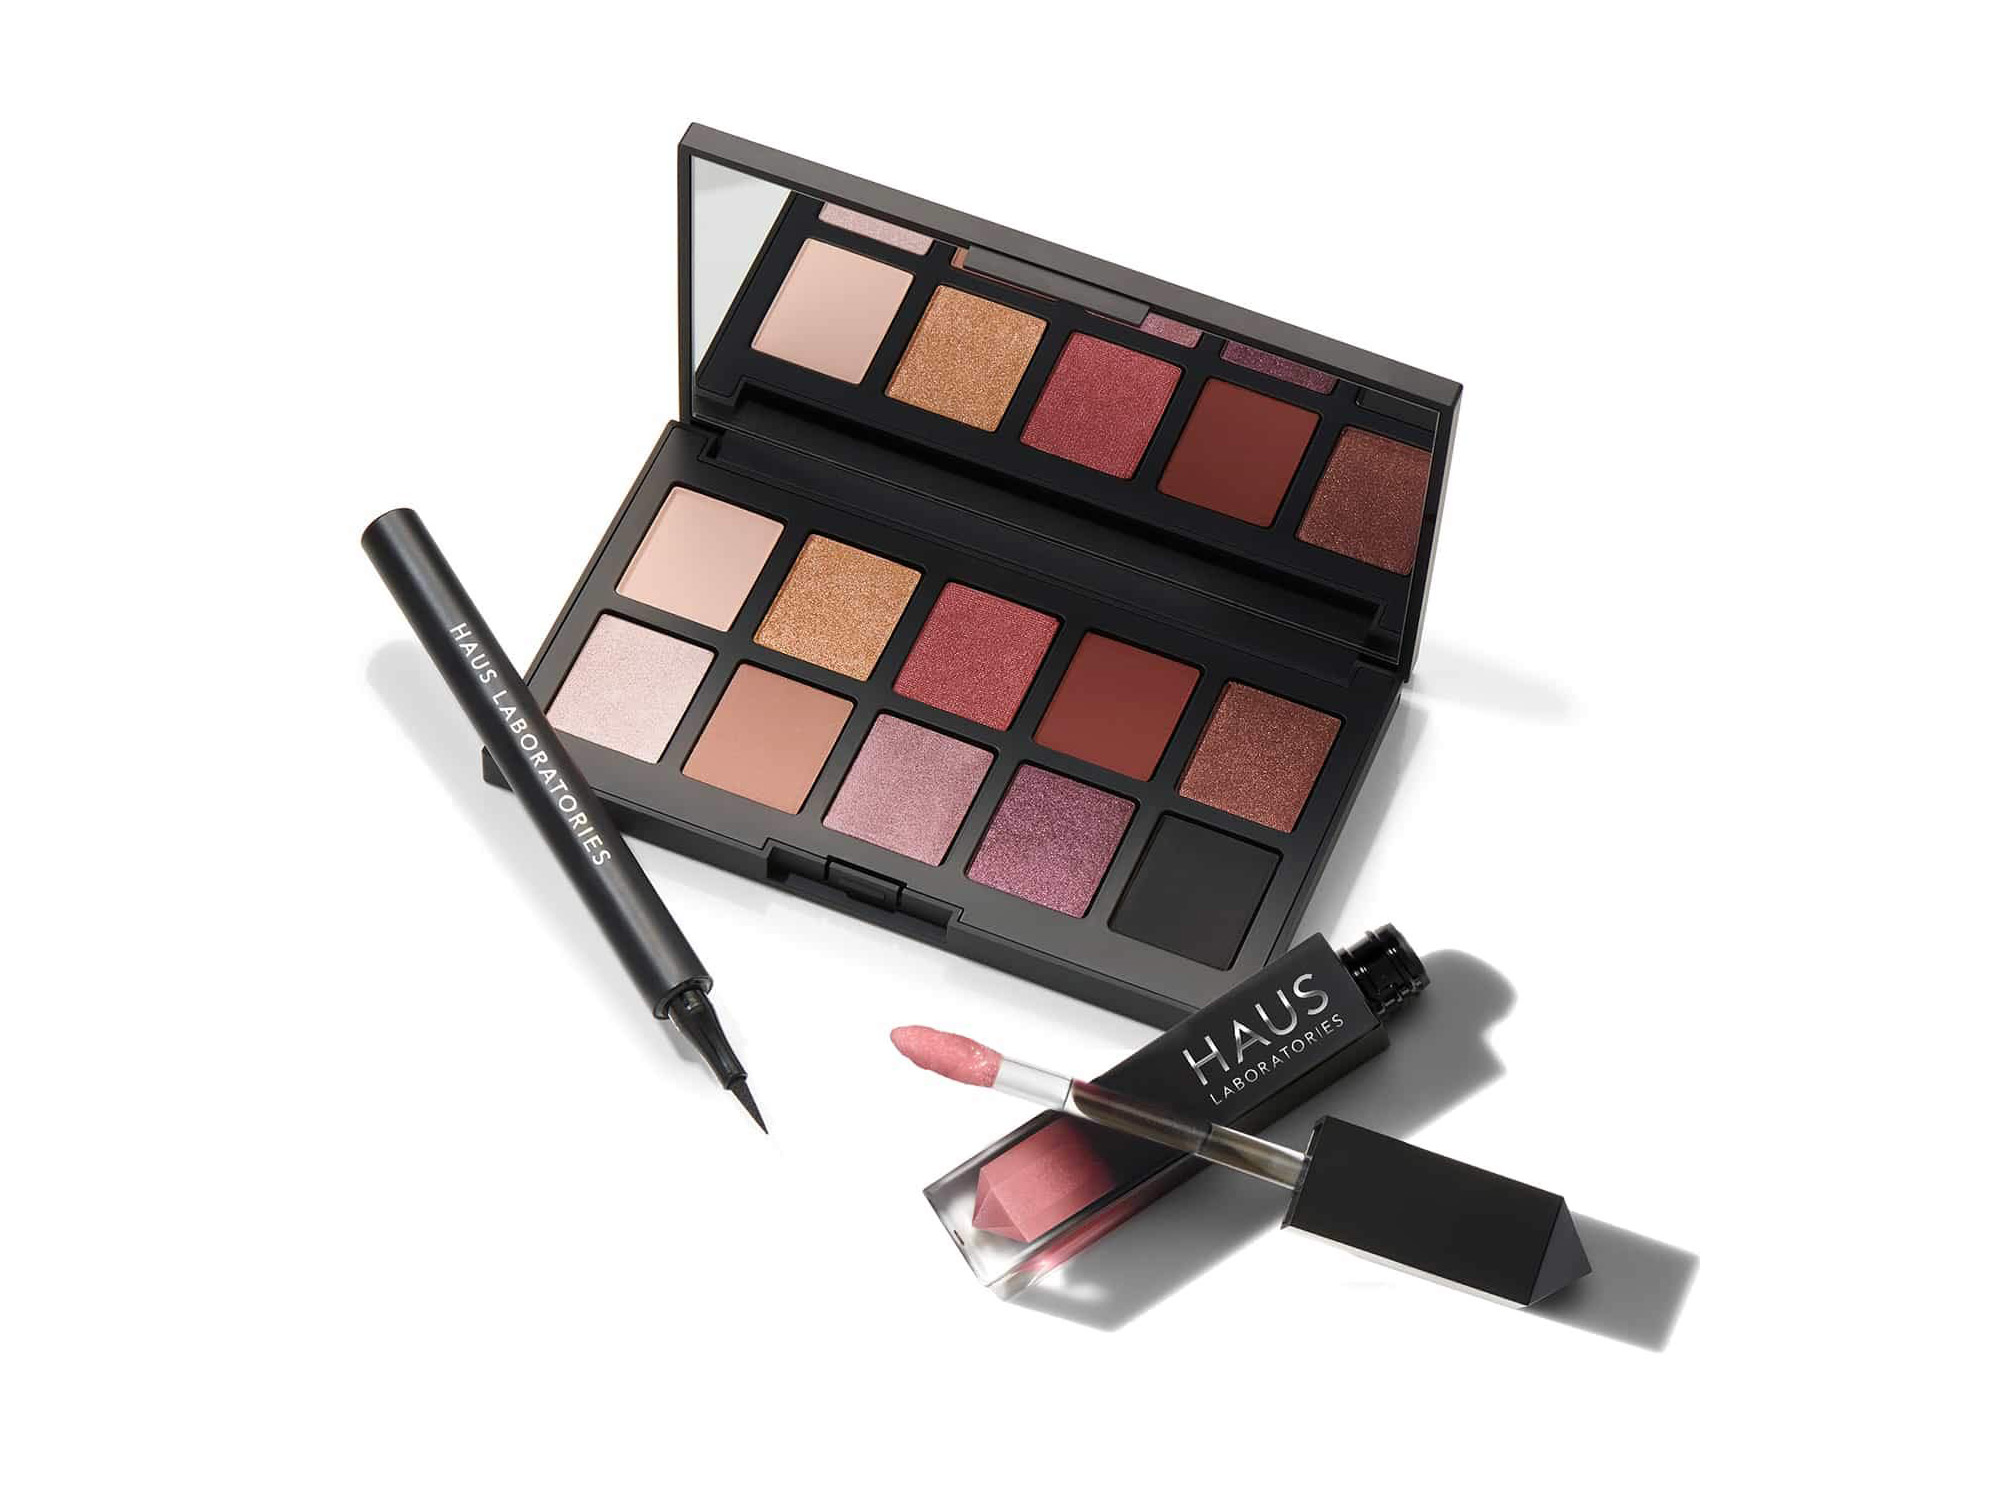 Best Celebrity Beauty Brands - Haus Laboratories by Lady Gaga